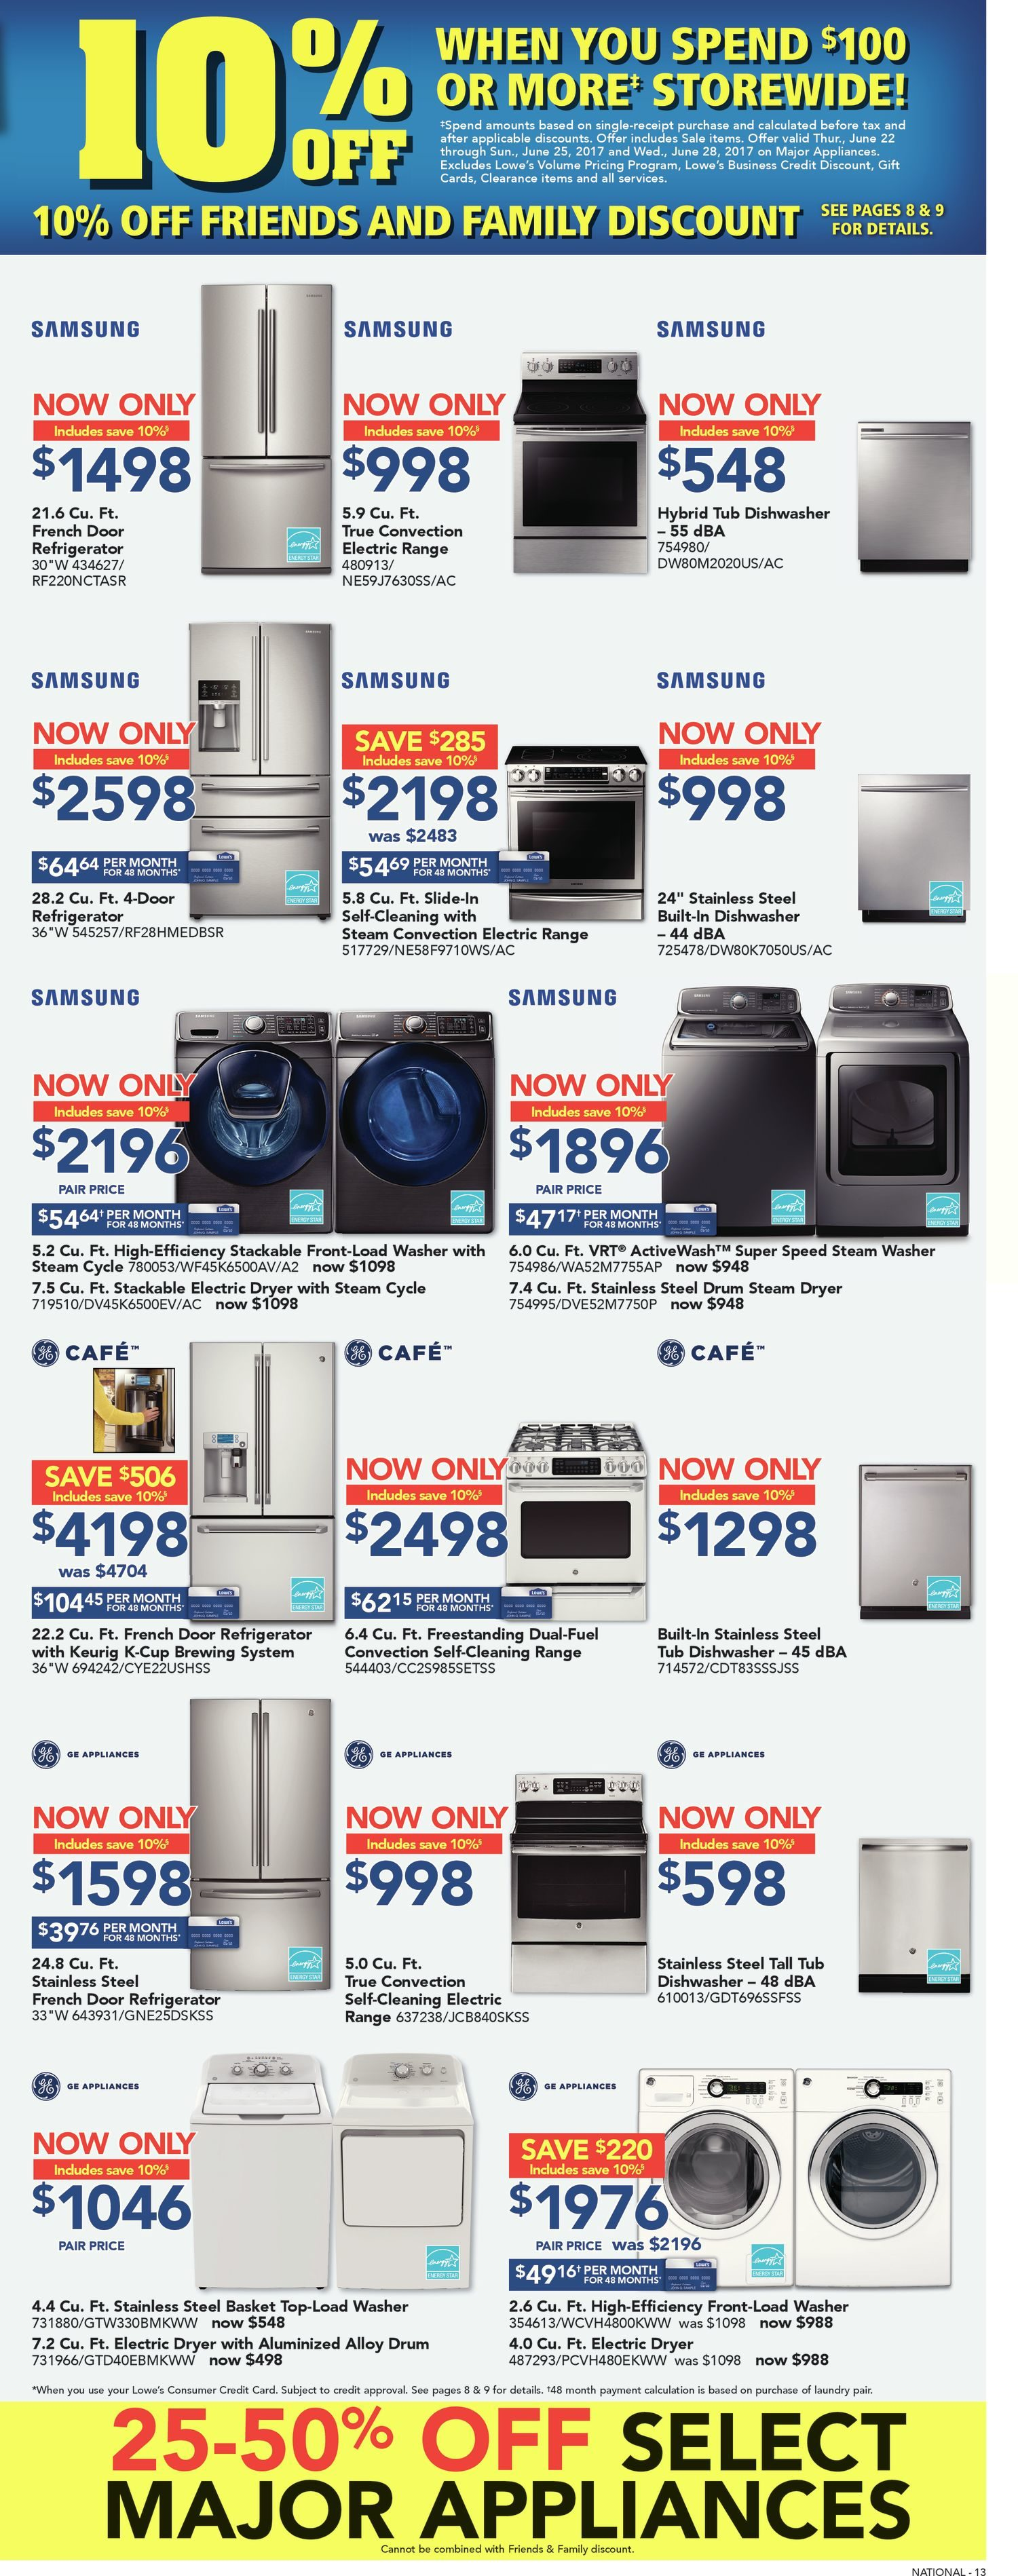 Lowes Weekly Flyer Friends Family Event Jun 22 28 3976 Fuel Filter